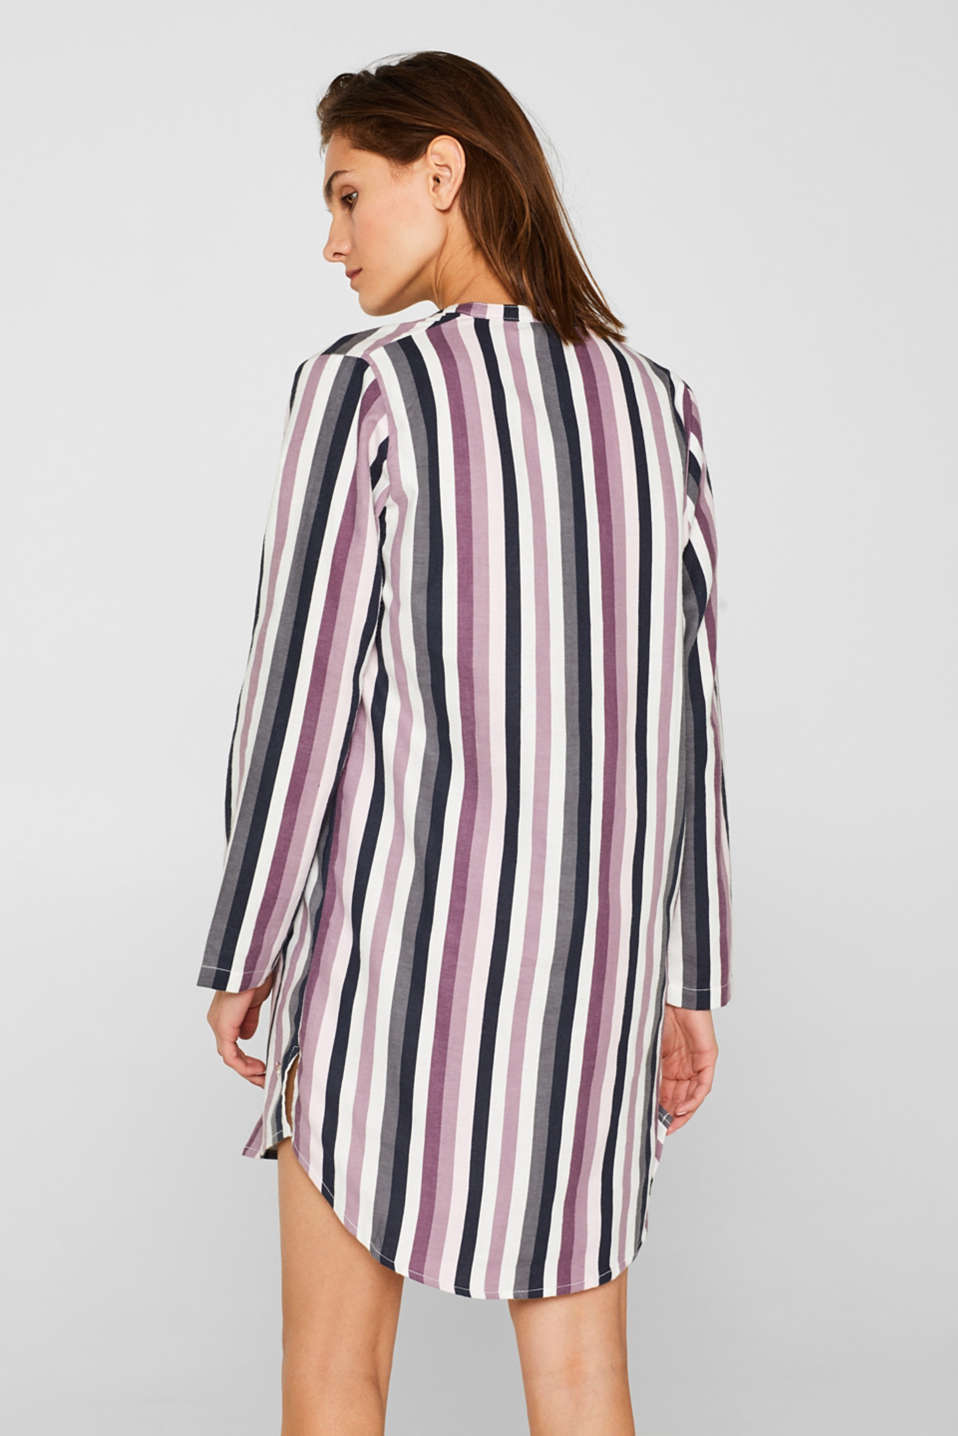 Flannel nightshirt made of 100% cotton, MAUVE, detail image number 1